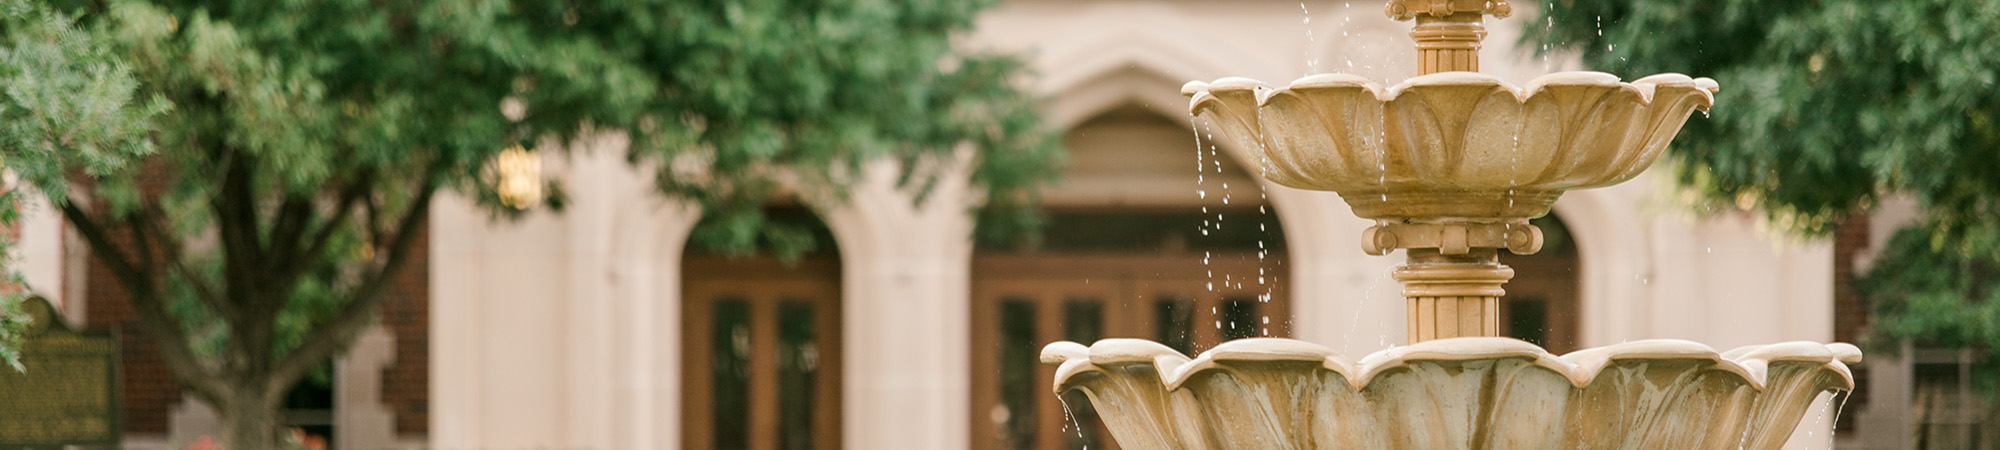 Fountain Outside of Wagner Hall